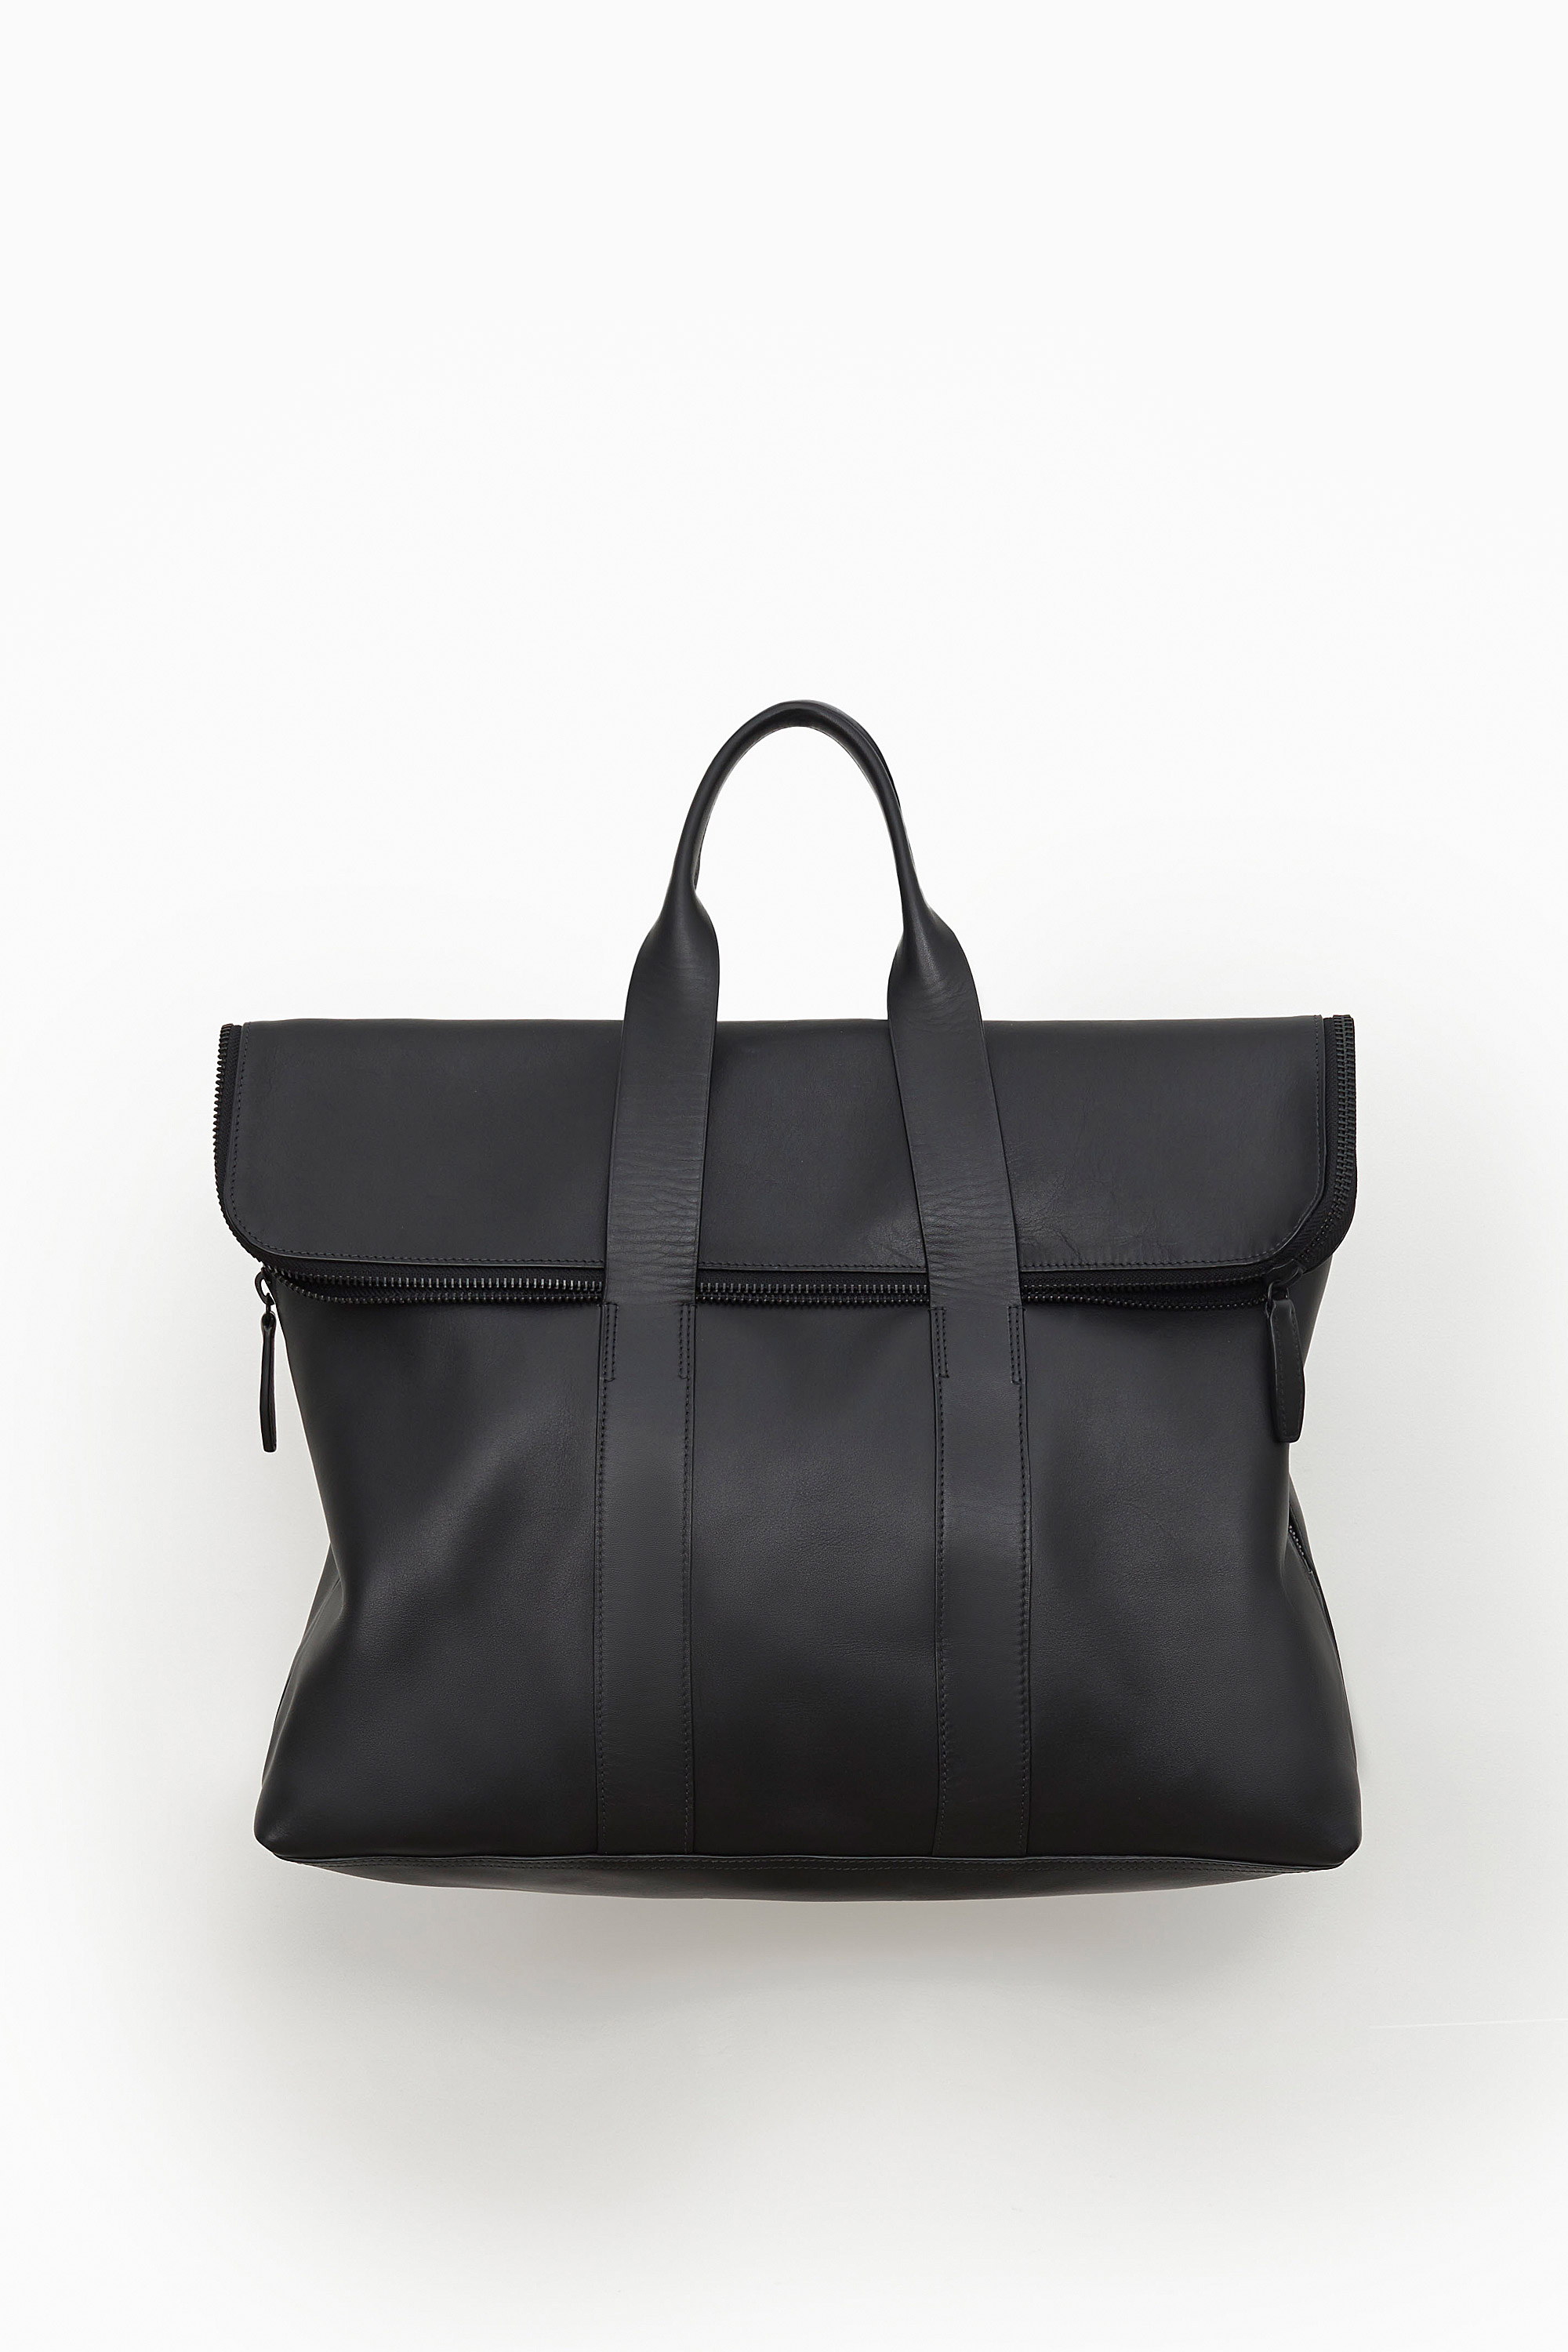 http://31philliplim.jp/products/detail.php?product_id=172